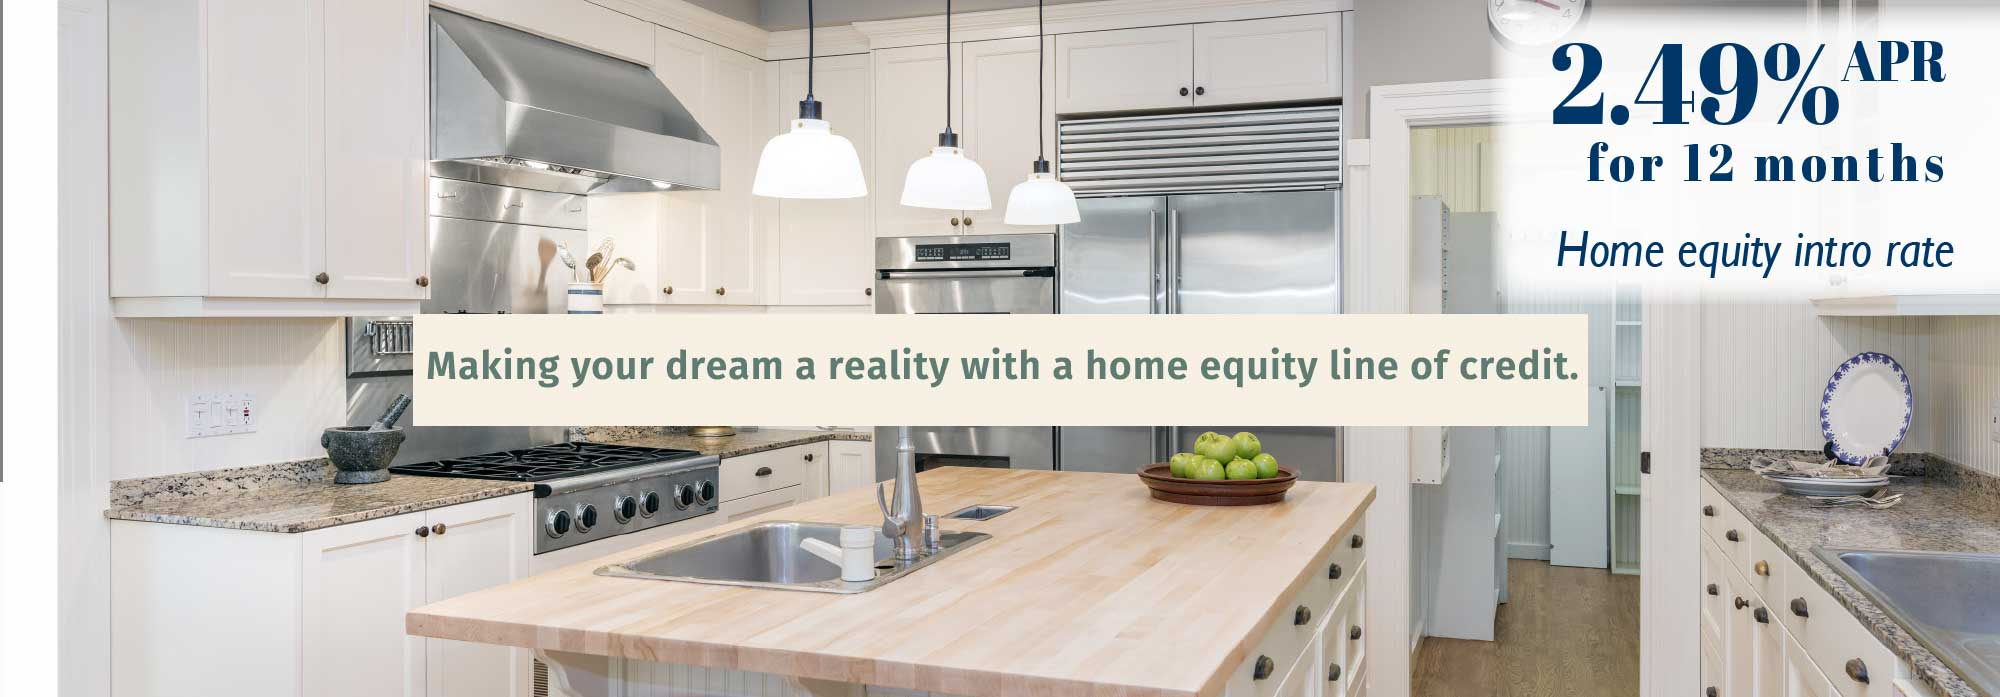 Home Equity Loans. Making your dream a reality with a home equity line of credit. 2.49% APR for 12 months. Home equity intro rate